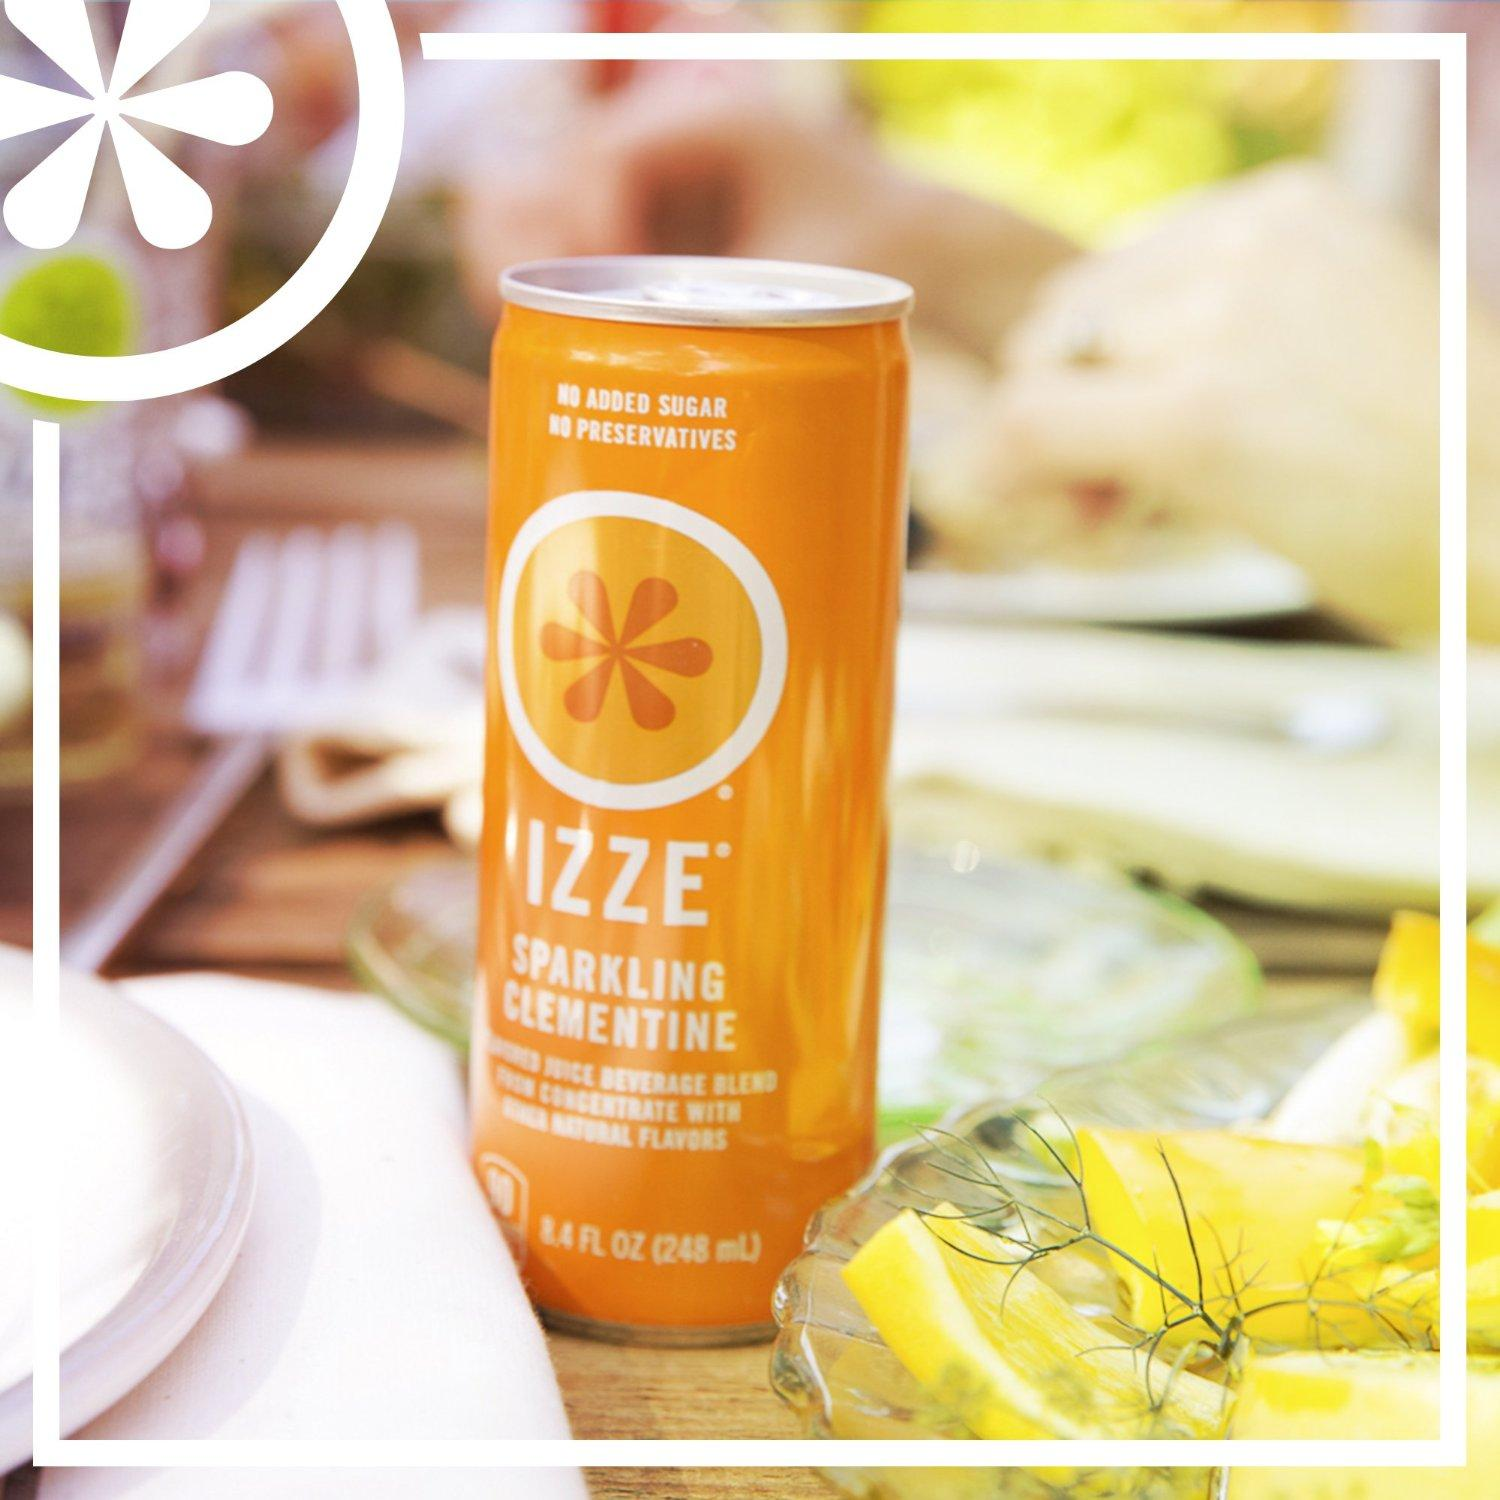 $12.11 IZZE Fortified Sparkling Juice, Clementine, 8.4-Ounce Cans (Pack of 24)